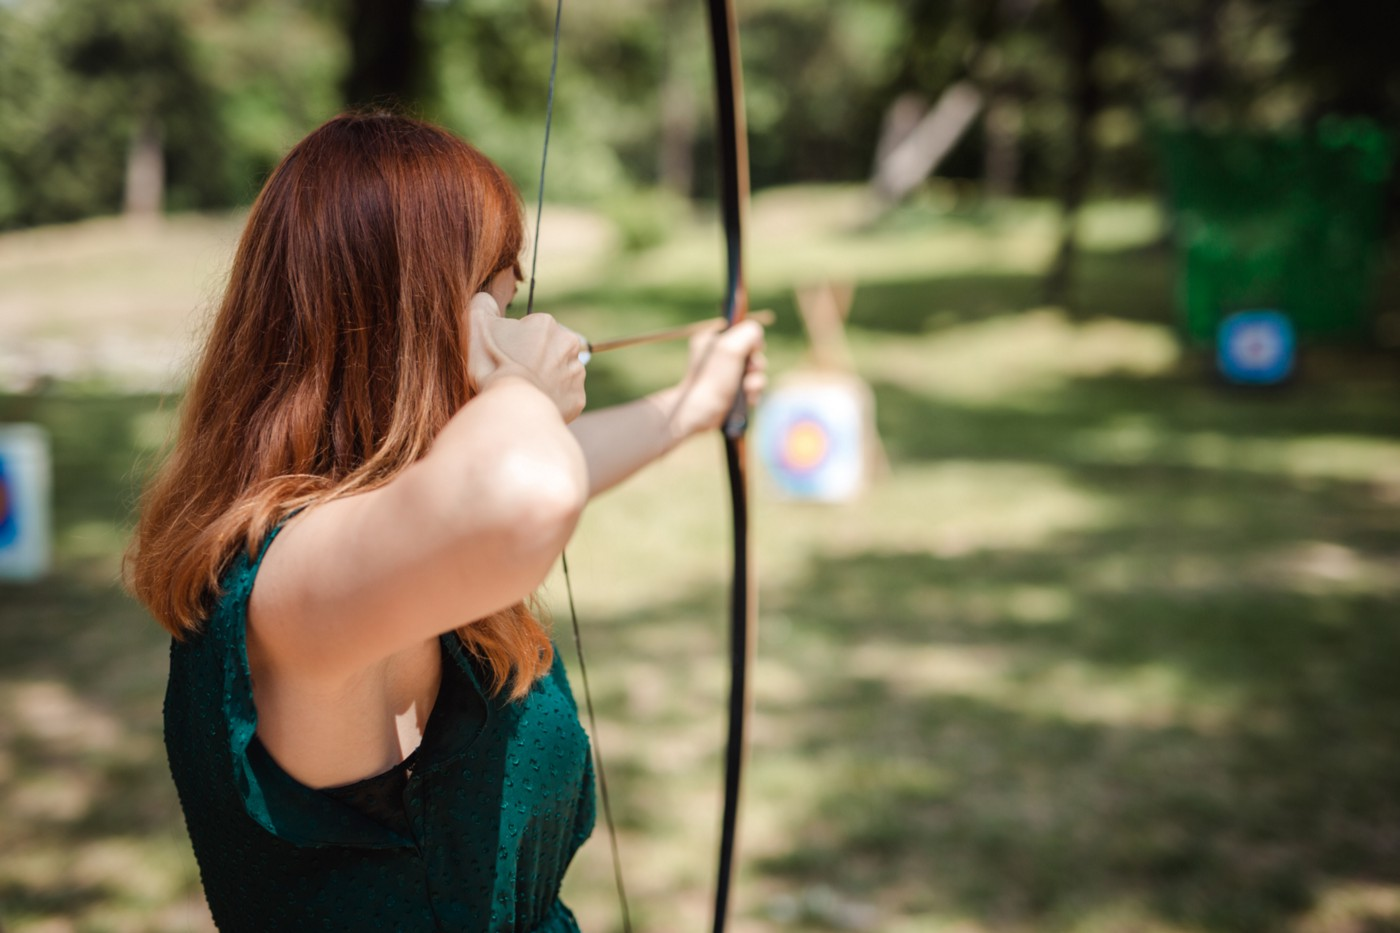 Woman aiming with a bow and arrow at a target.